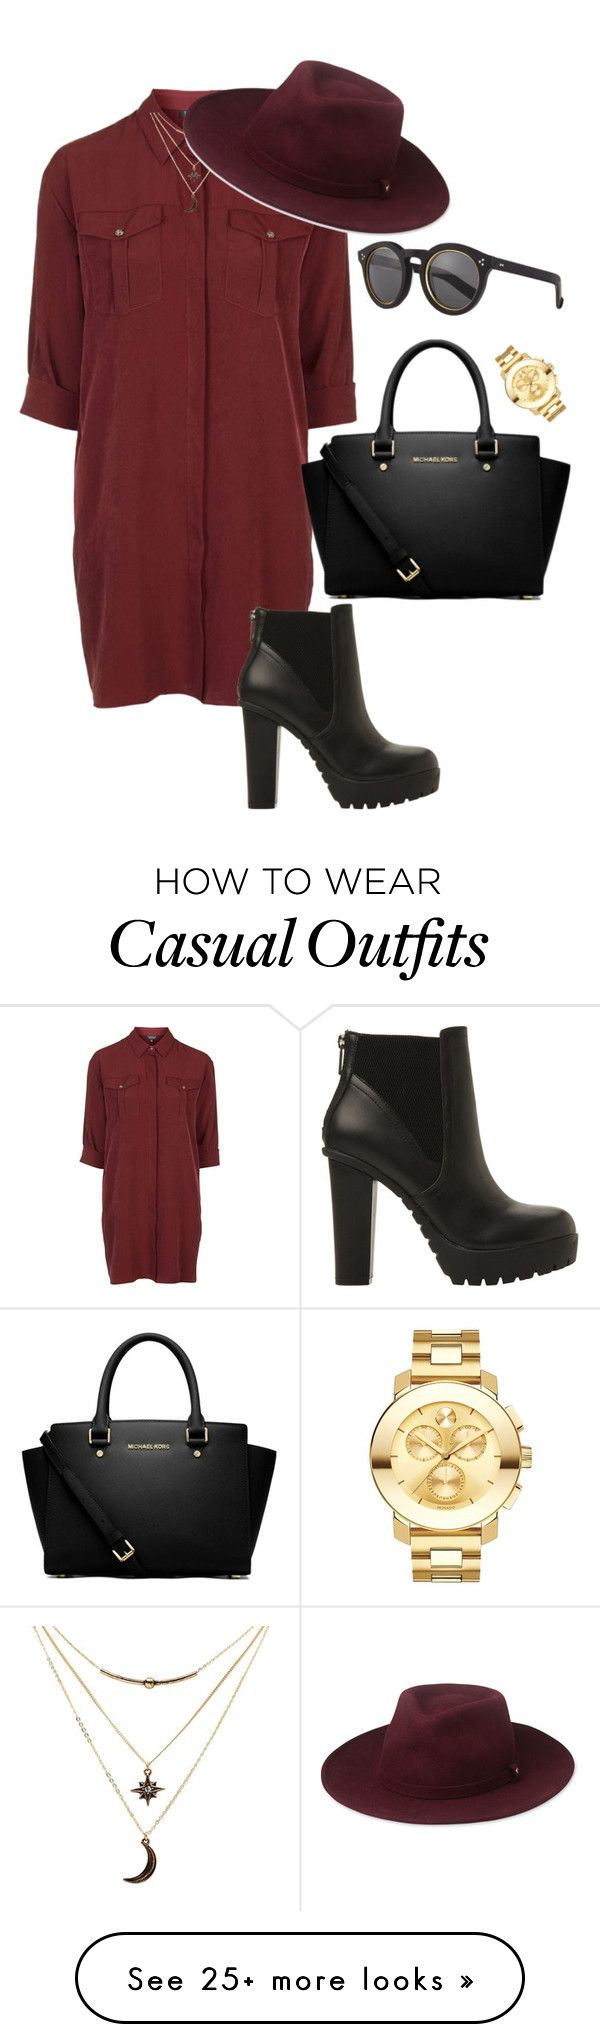 """Casual#24"" by jajina-morongova on Polyvore featuring Topshop, Steve Madden, MICHAEL Michael Kors, Charlotte Russe, Whistles, Illesteva and Movado"